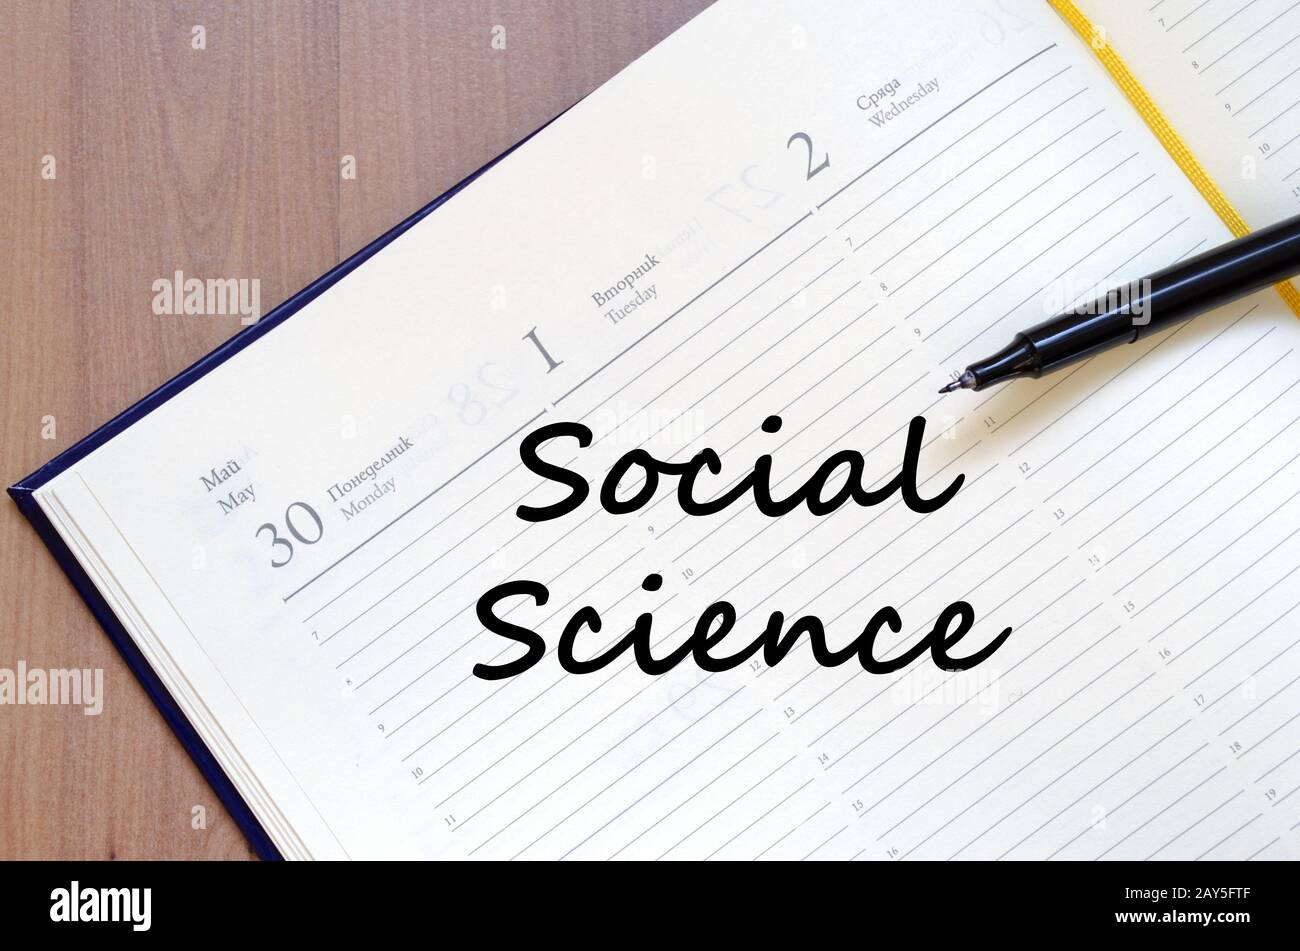 Social Science Write On Notebook Stock Photo Alamy